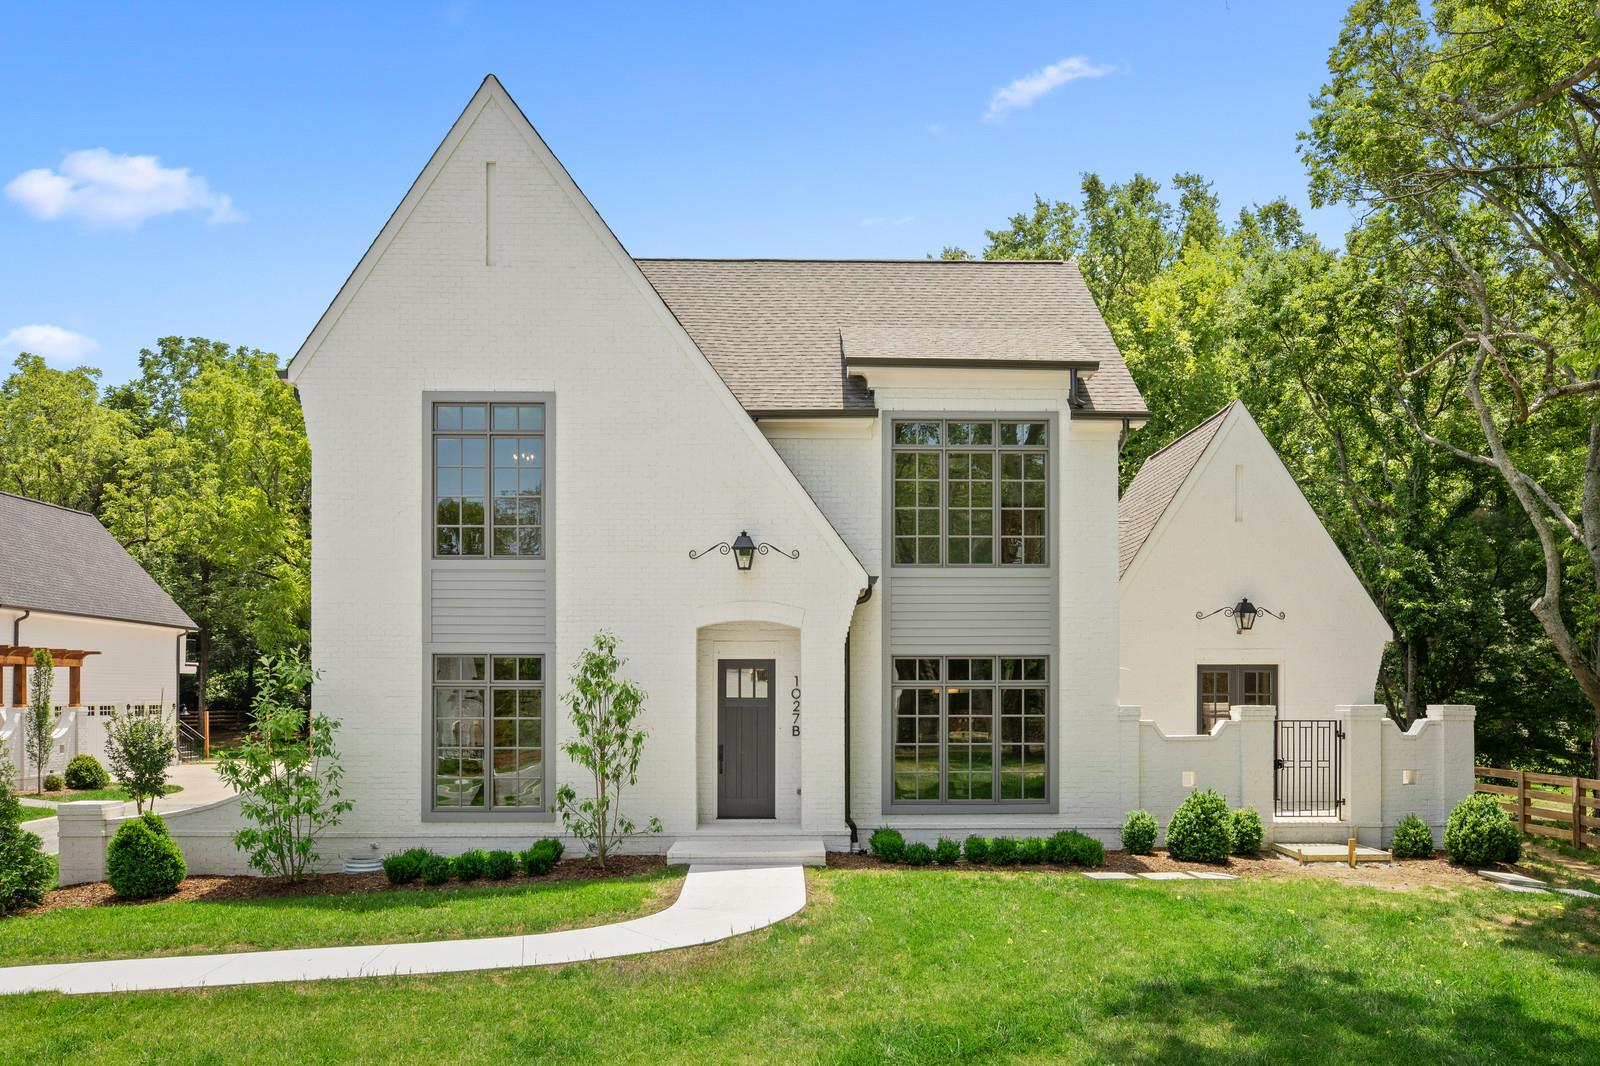 $2,350,000 - 4Br/6Ba -  for Sale in Battery Cove, Nashville